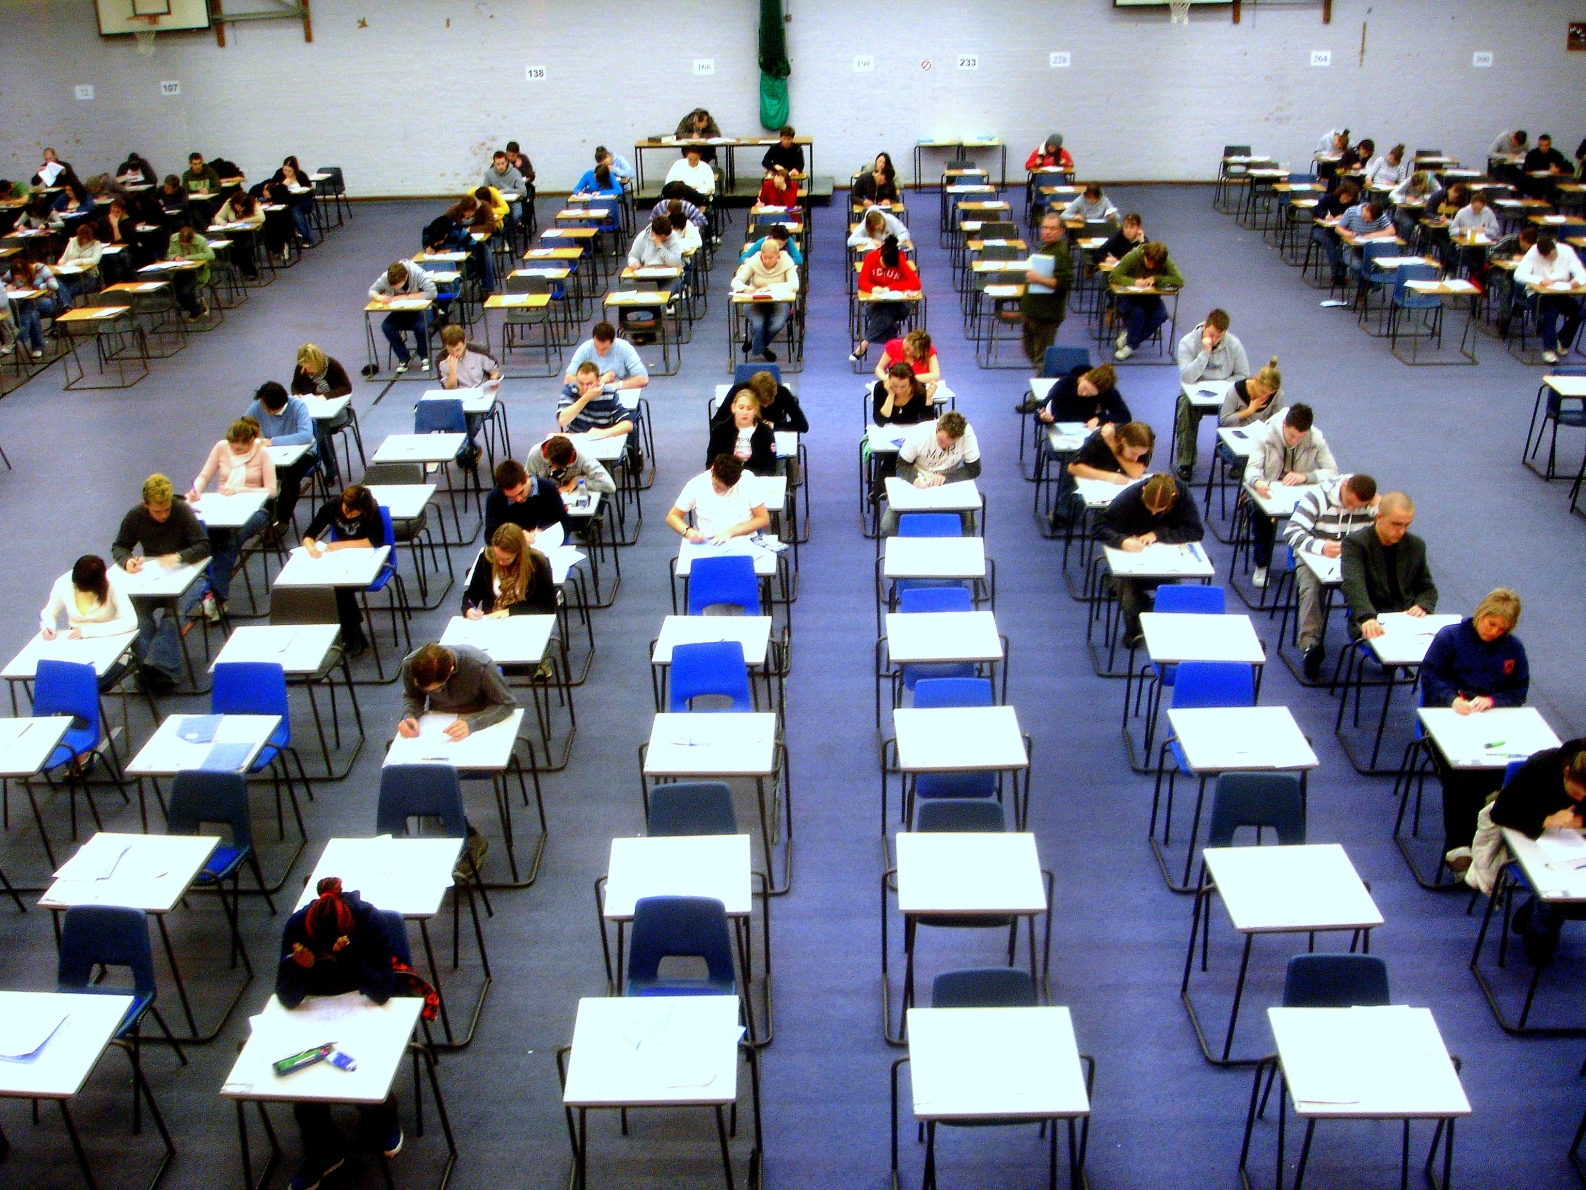 image of exam hall